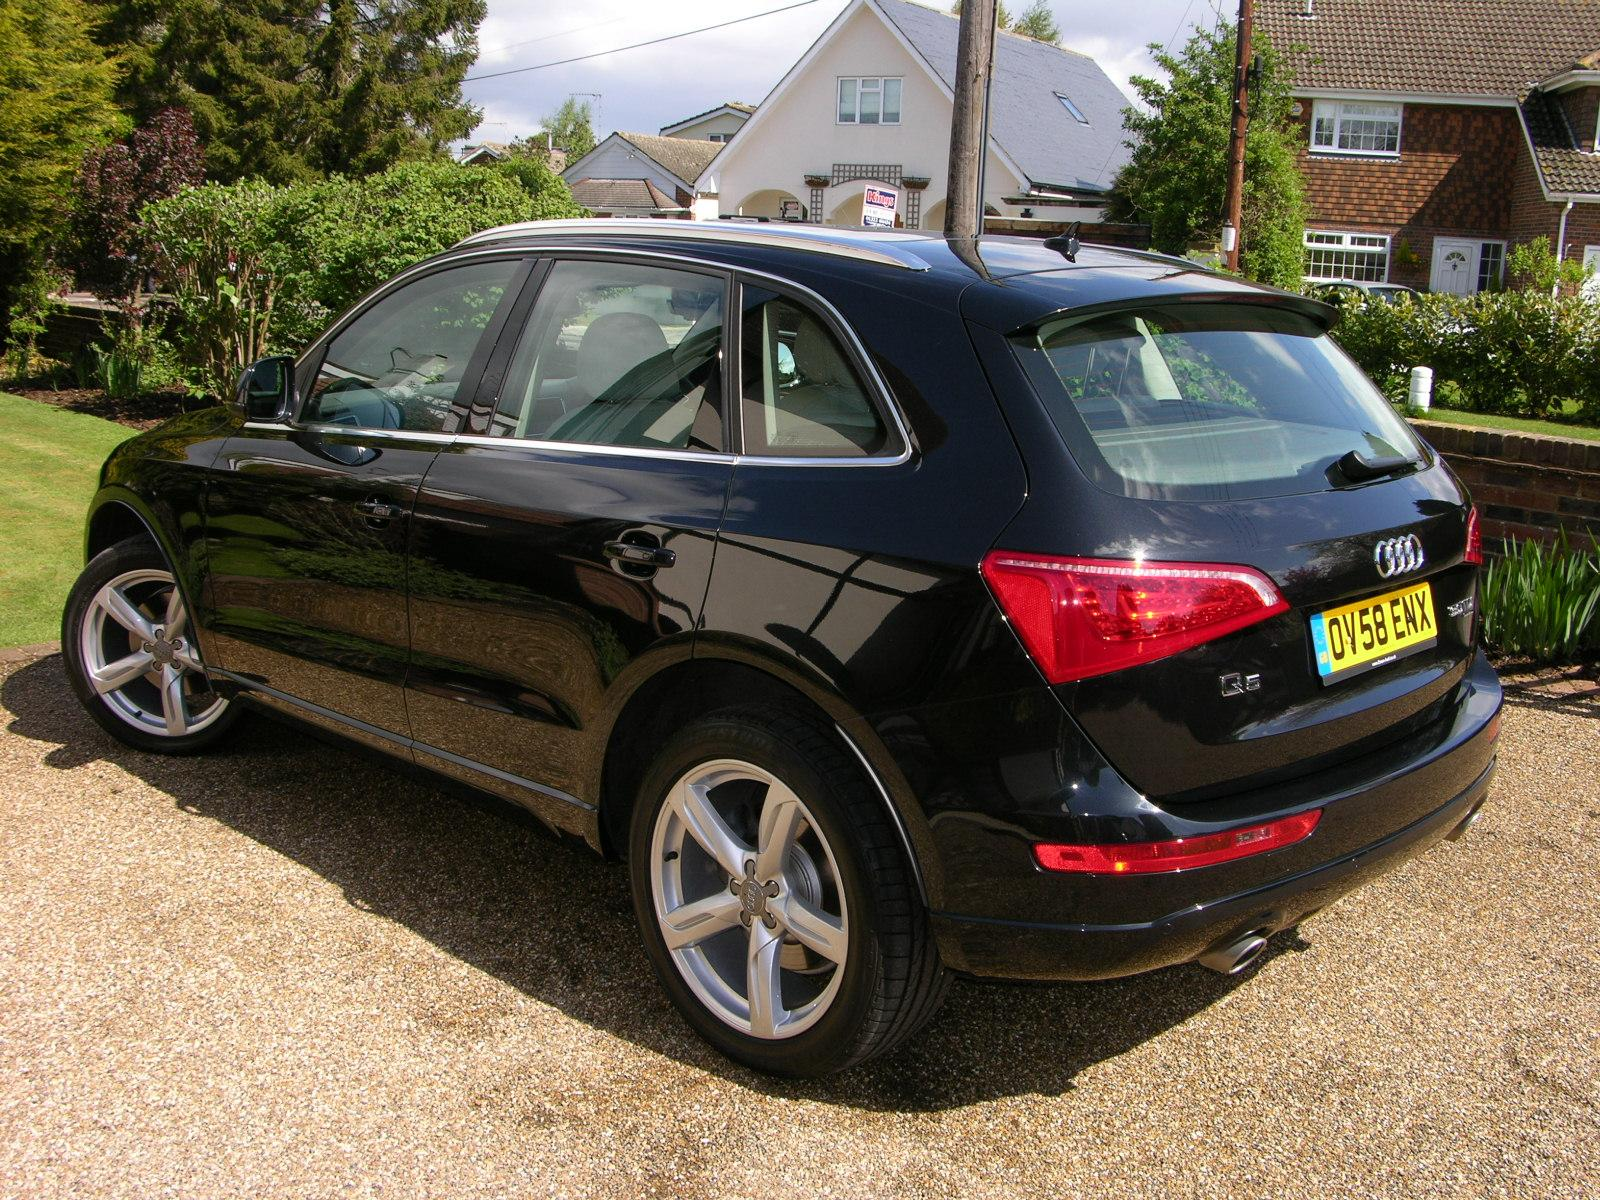 Audi Q5 Wikipedia >> File:2009 Audi Q5 SE TDi Quattro - Flickr - The Car Spy ...